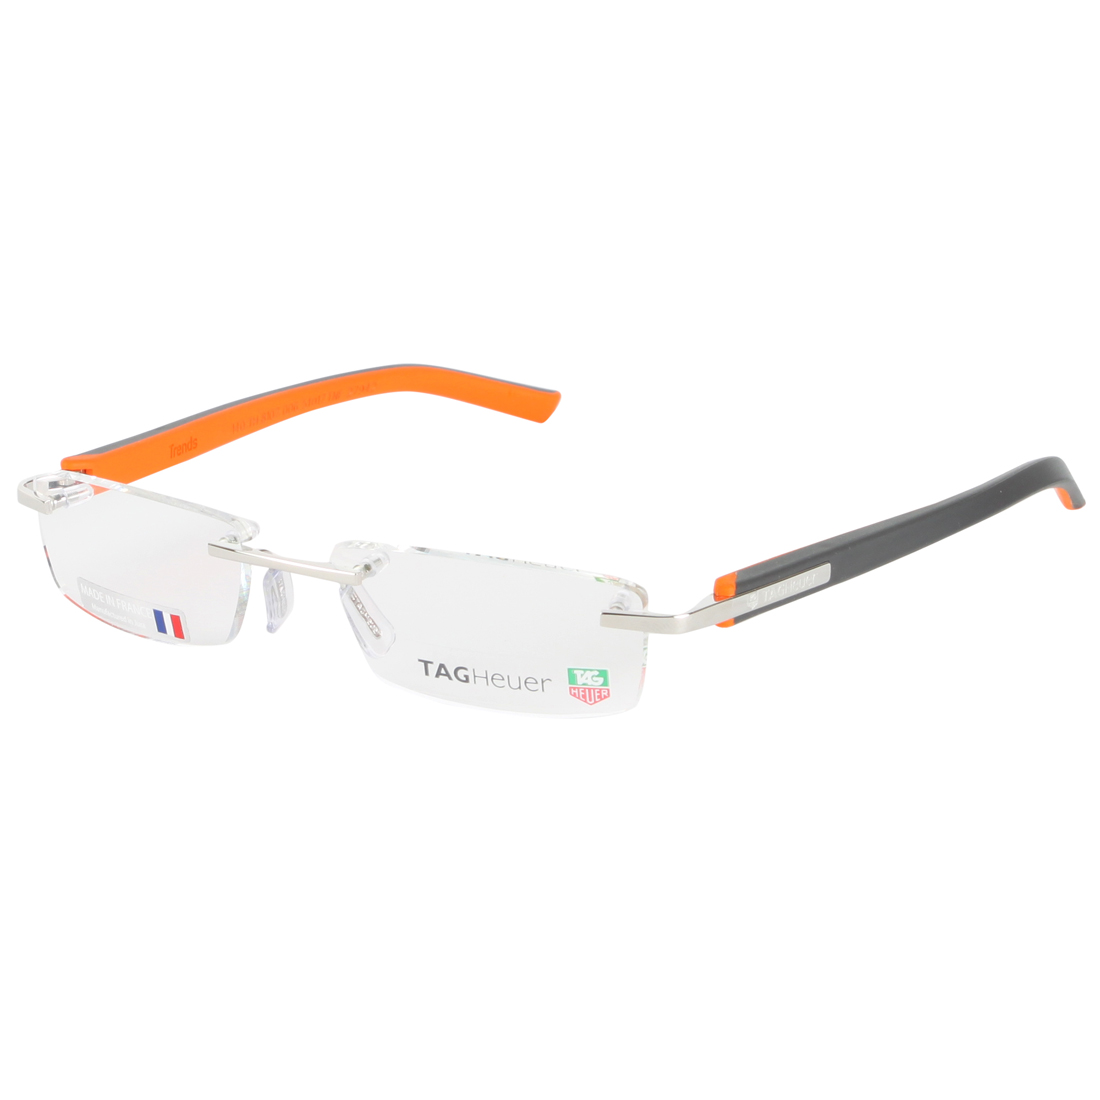 Rimless Glasses Tag Heuer : TAG Heuer Charcoal/Orange 8107-006 Trends Rubber Rimless ...